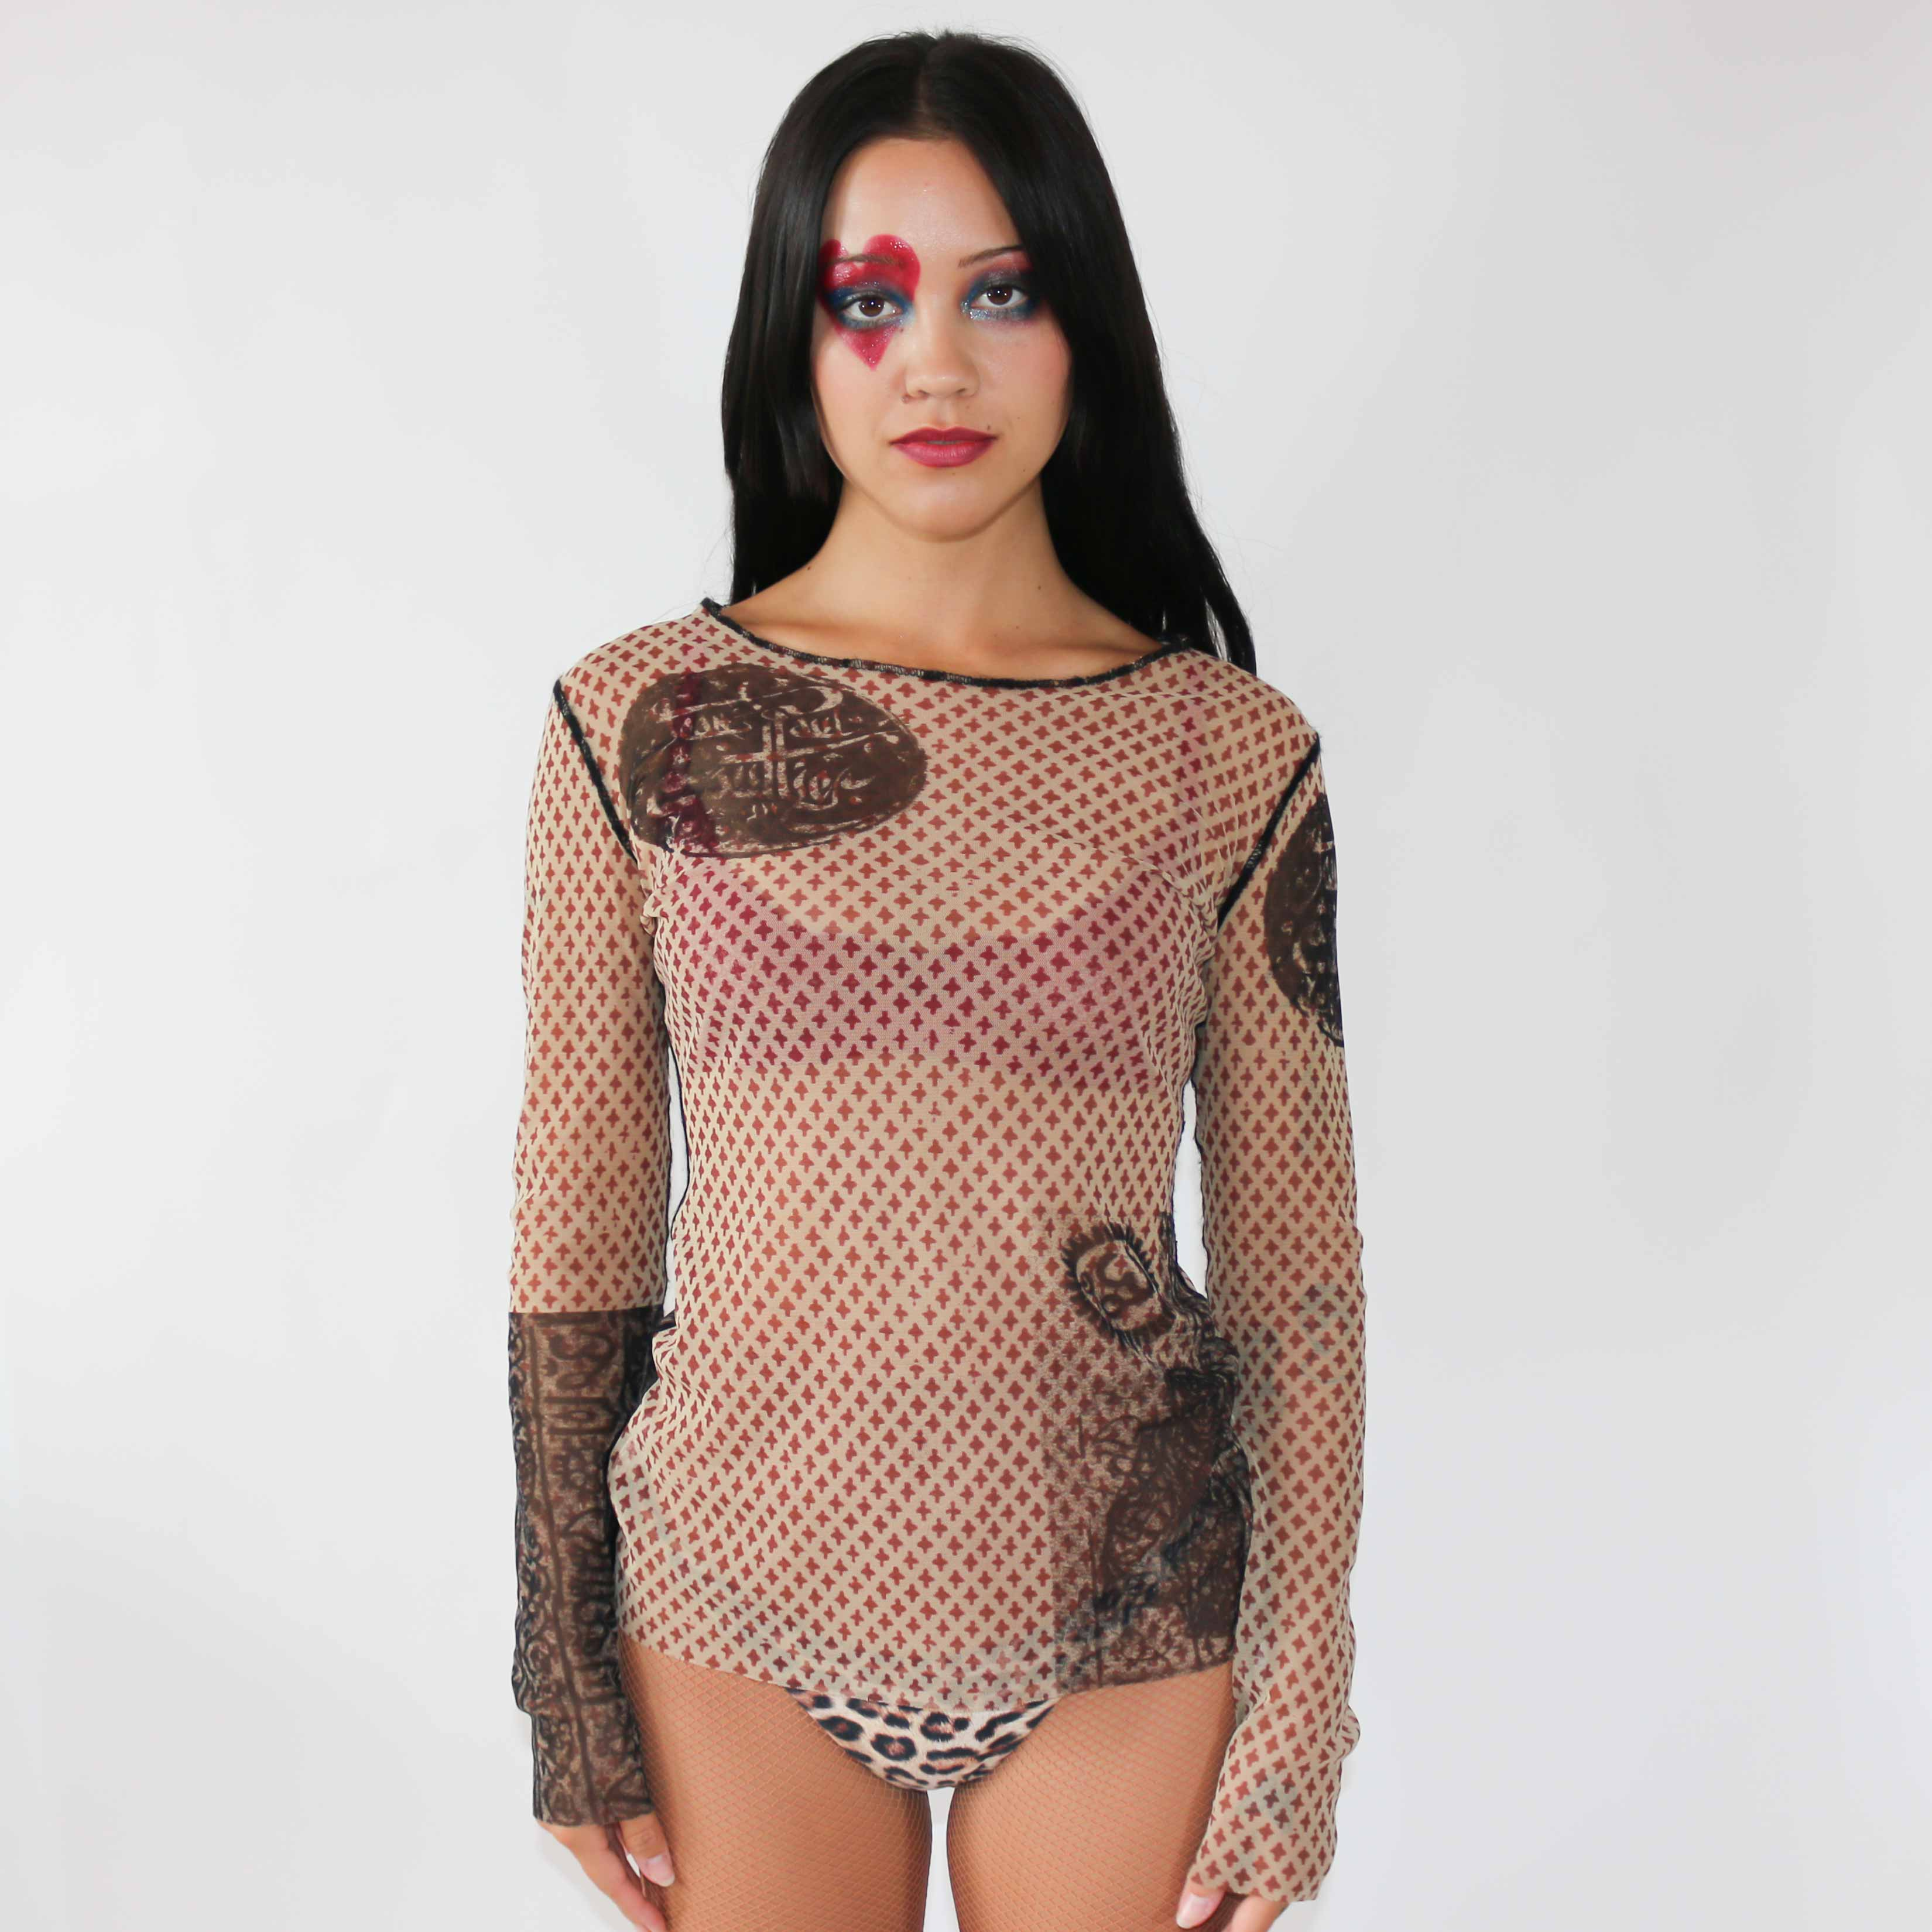 Only a few ever made, this super rare mesh top is a collectable. And not to brag but a little bridie told me Kim Kardashian has the exact same one.